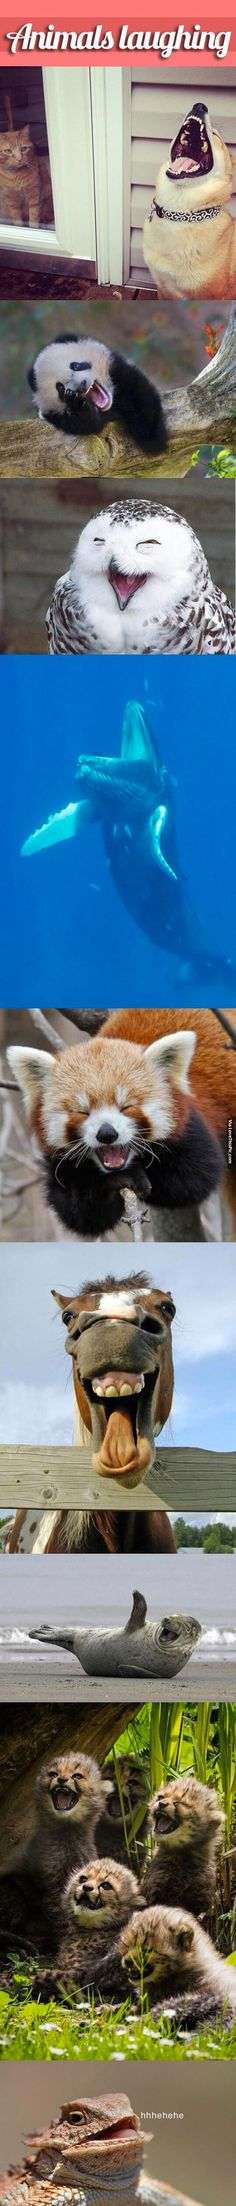 Animals Laughing funny cute animals quote adorable animal lol humor funny pictures funny animals funny pics